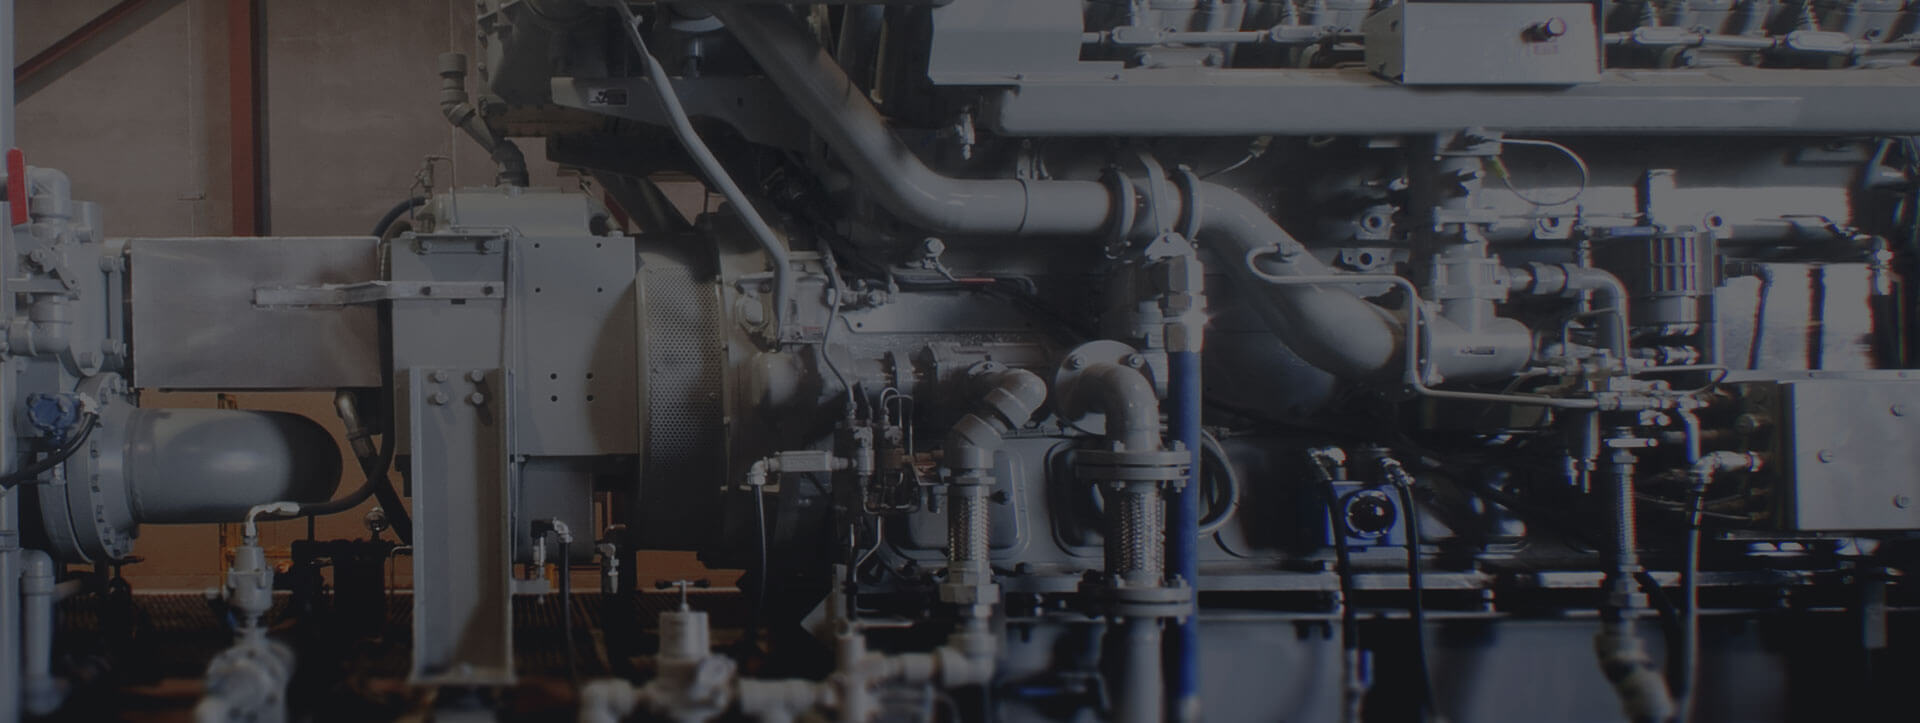 Gas Compression Banner image